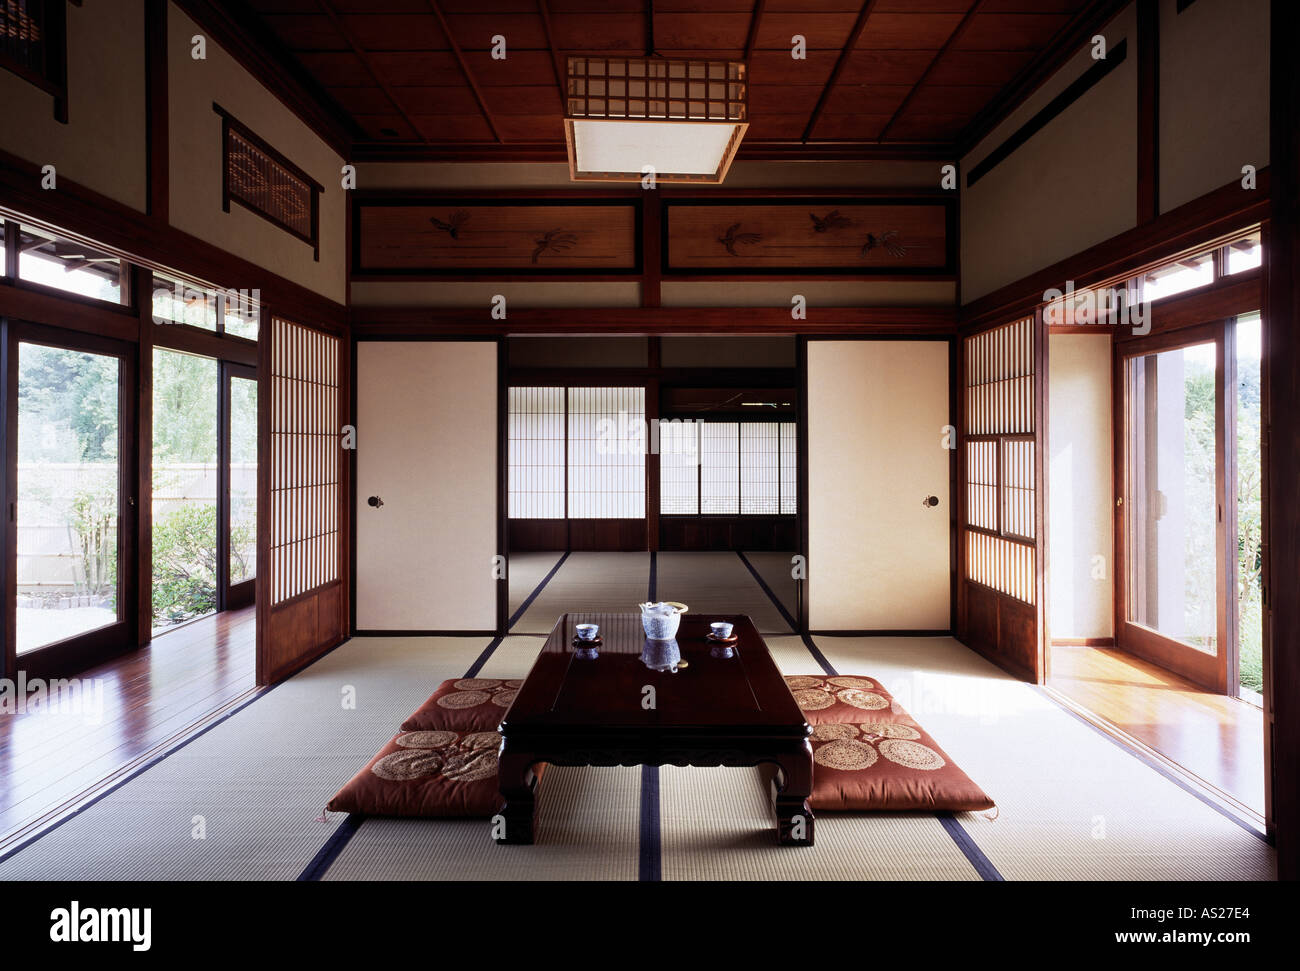 d sseldorf japanisches kulturzentrum traditionelles holzhaus aus stock photo royalty free. Black Bedroom Furniture Sets. Home Design Ideas